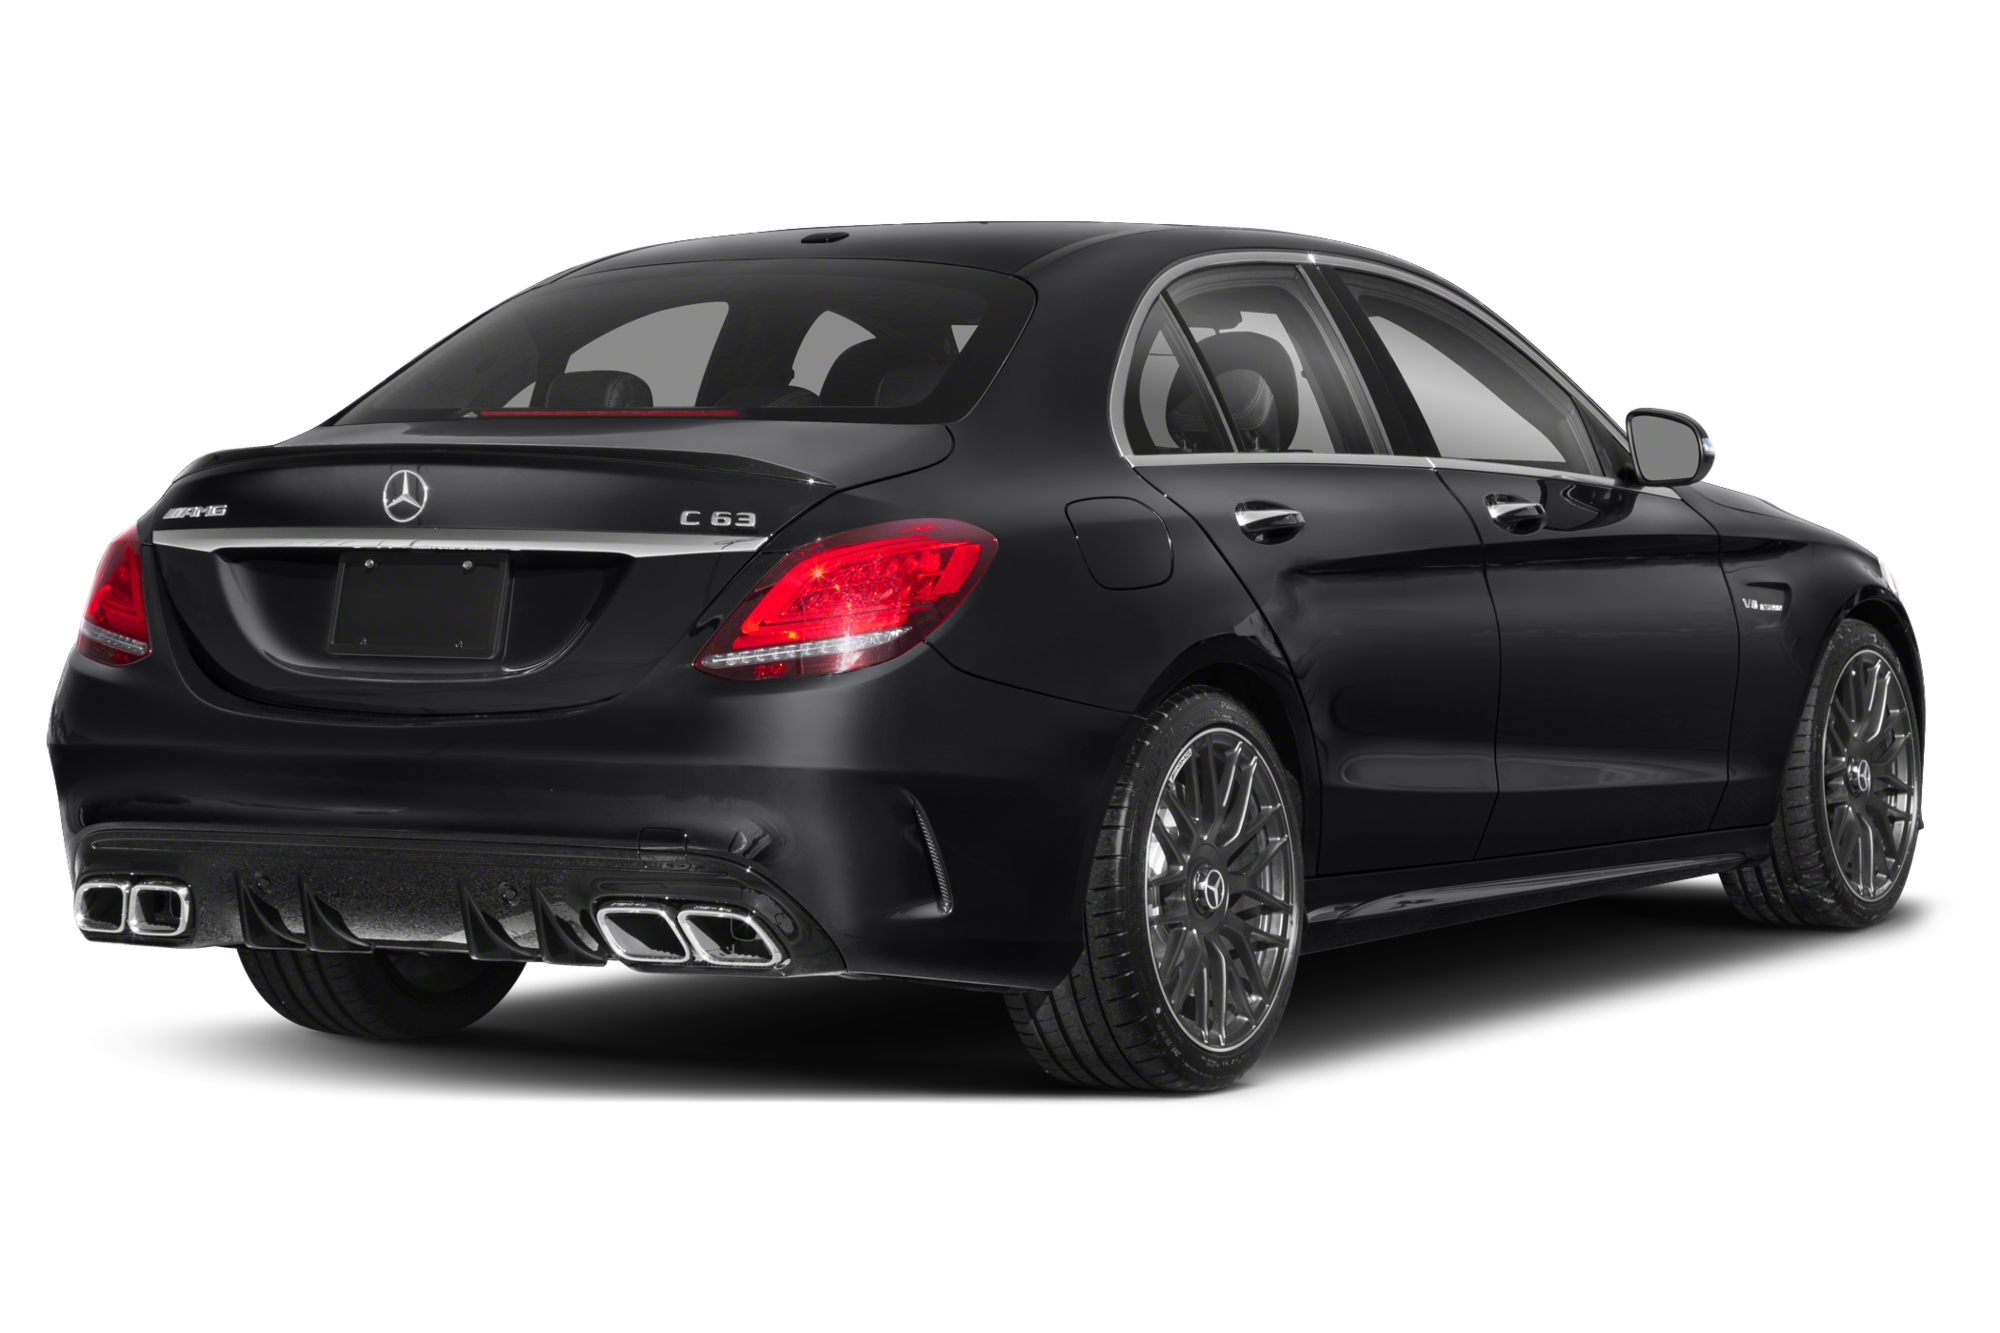 2019-2020 Mercedes-AMG Sedans and SUVs: Recall Alert